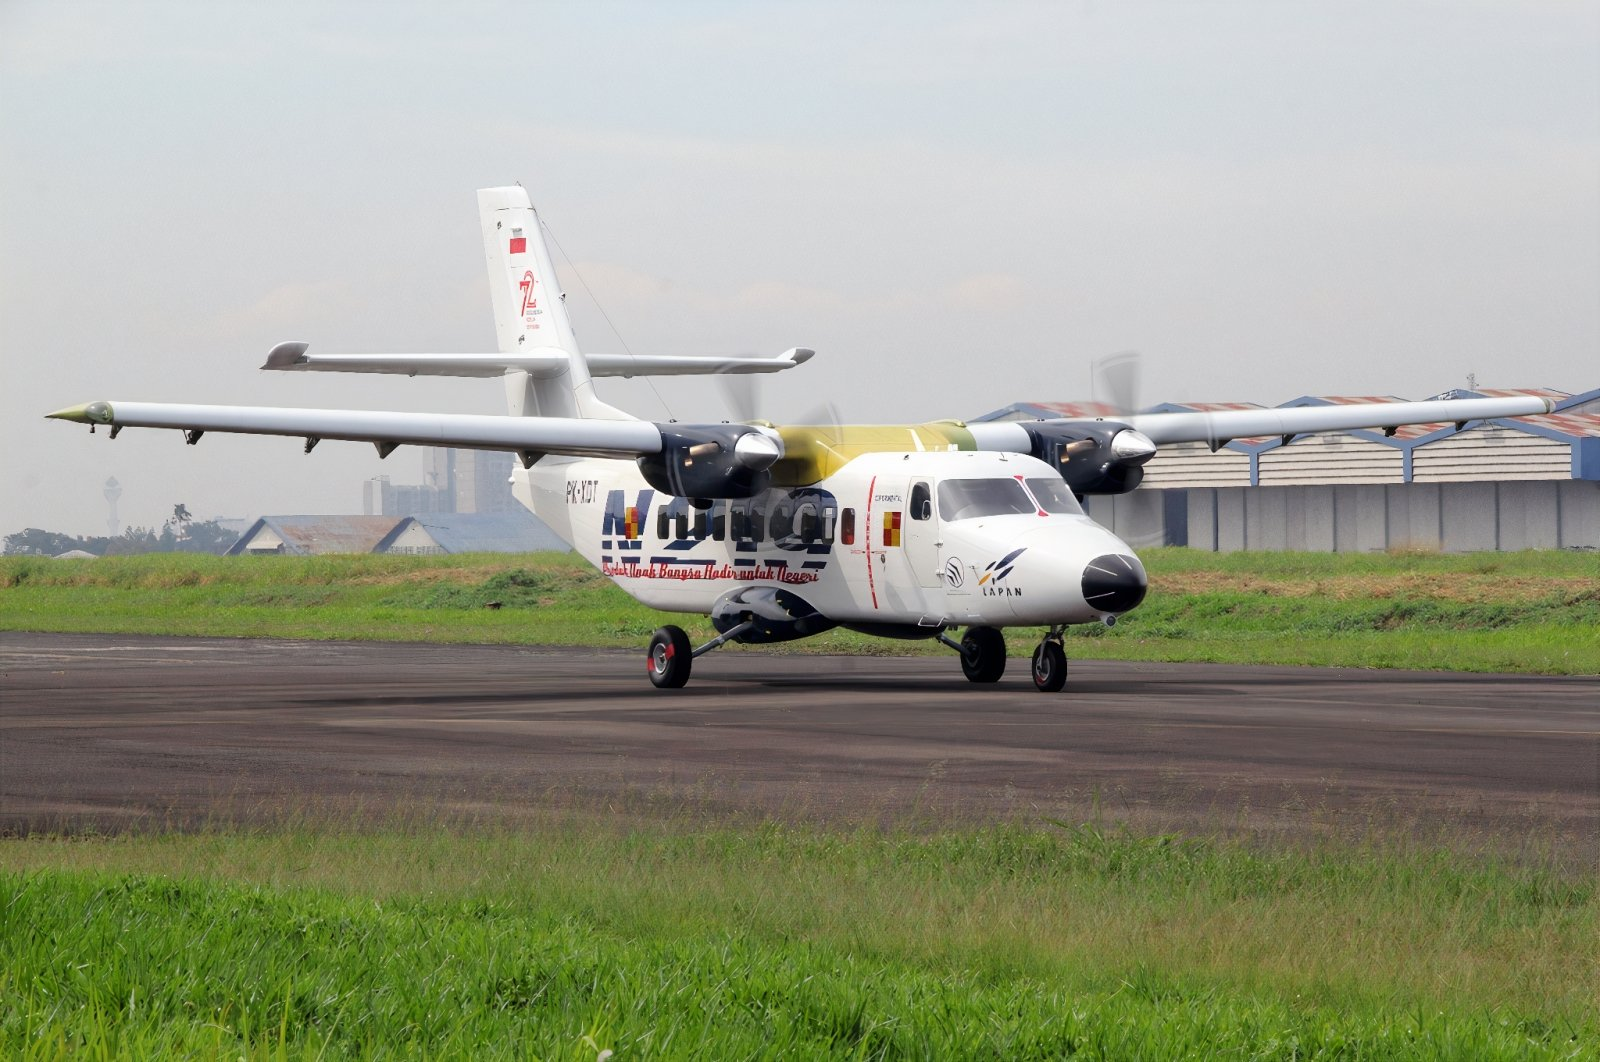 An Indonesian Air Force N219 aircraft lands after its test flight, Aug. 16, 2017. (Photo by Wikipedia)